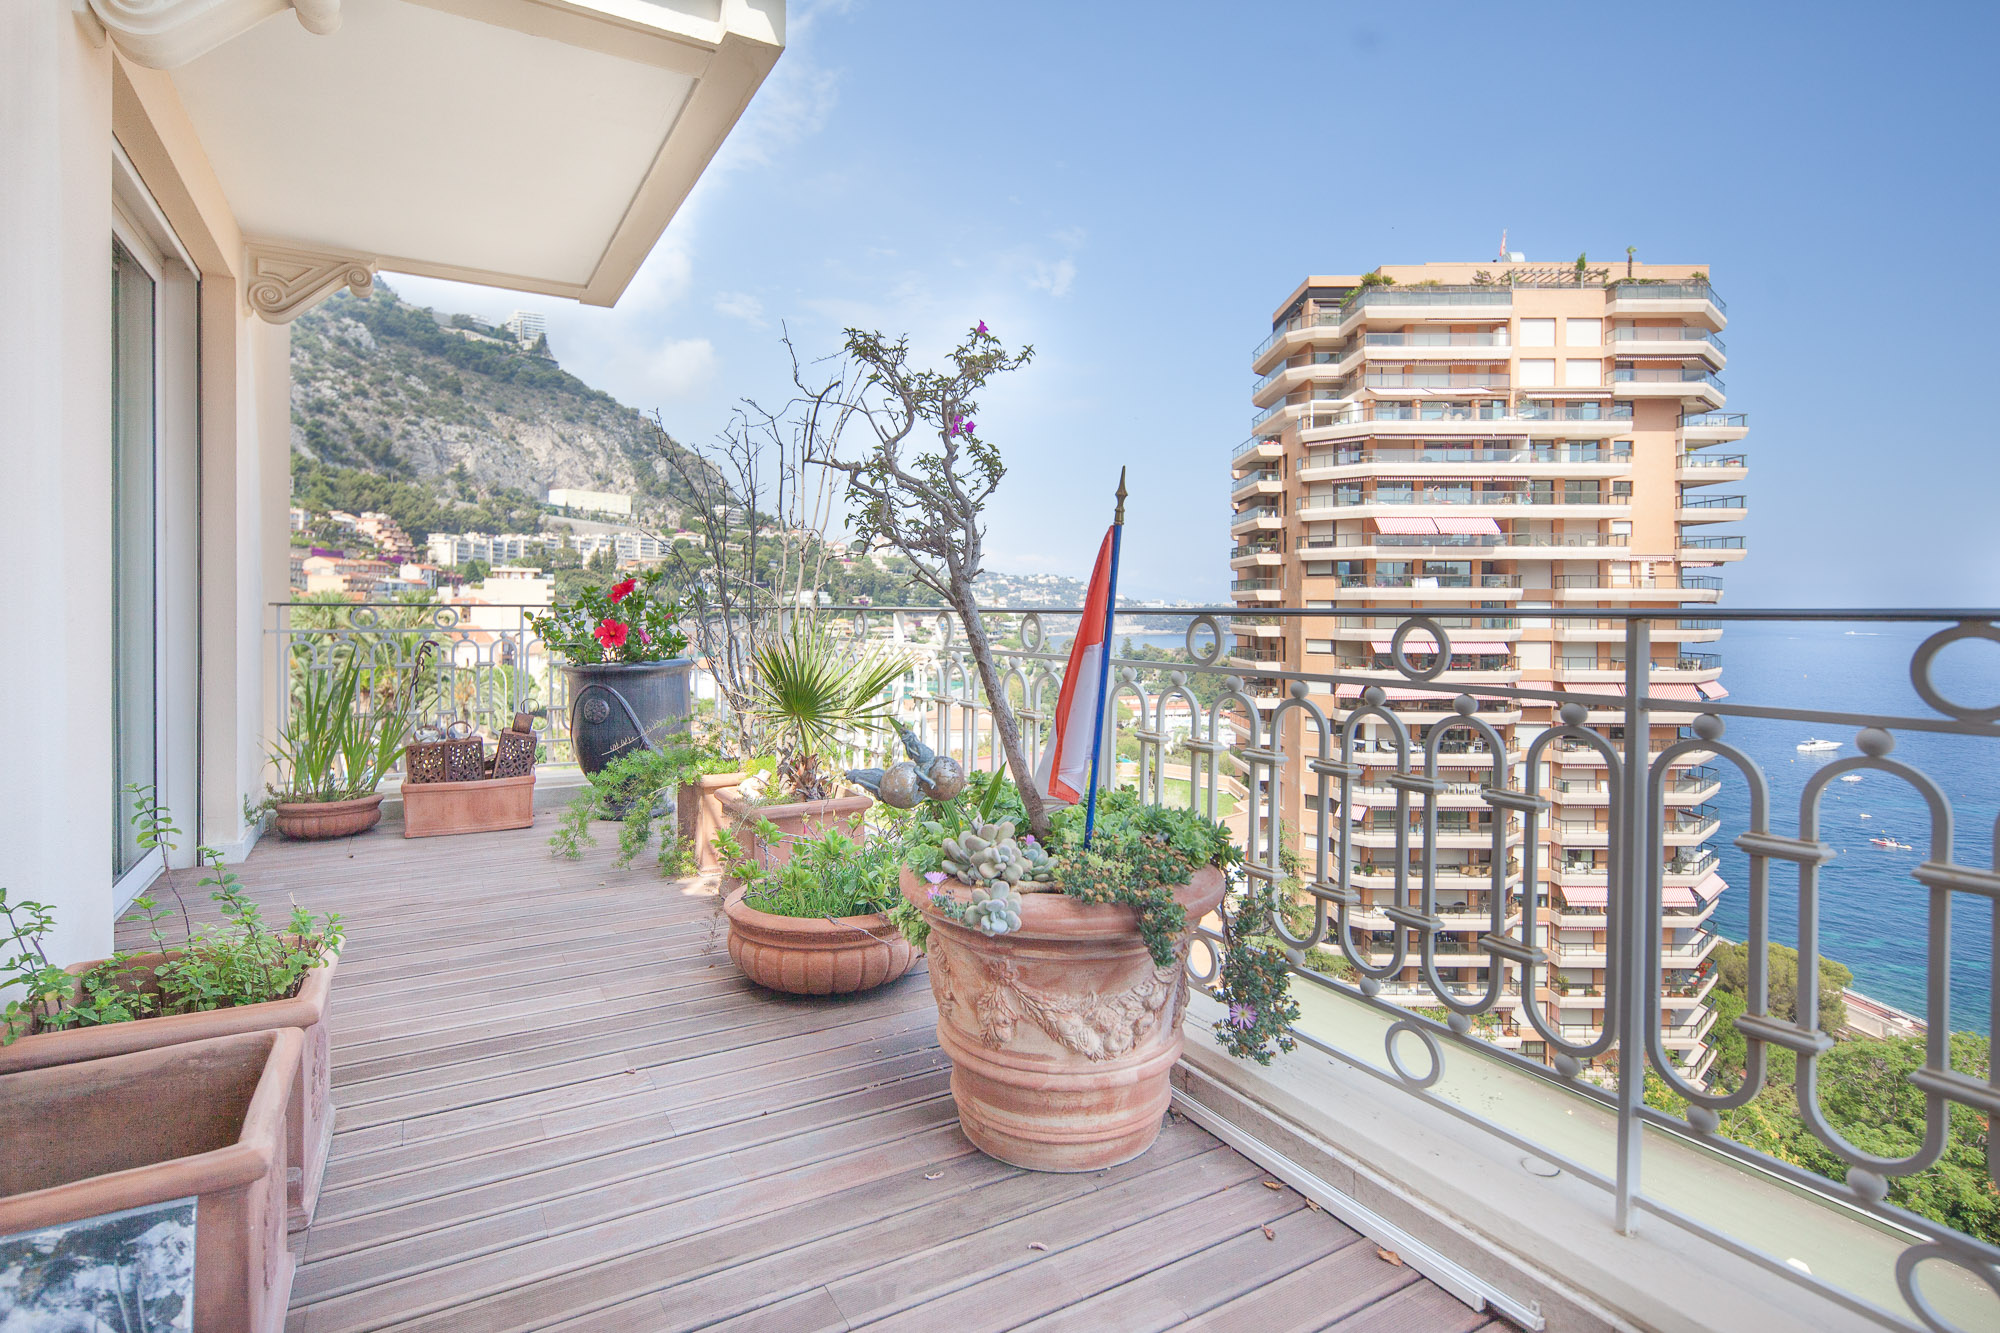 House Hunting in … Monaco